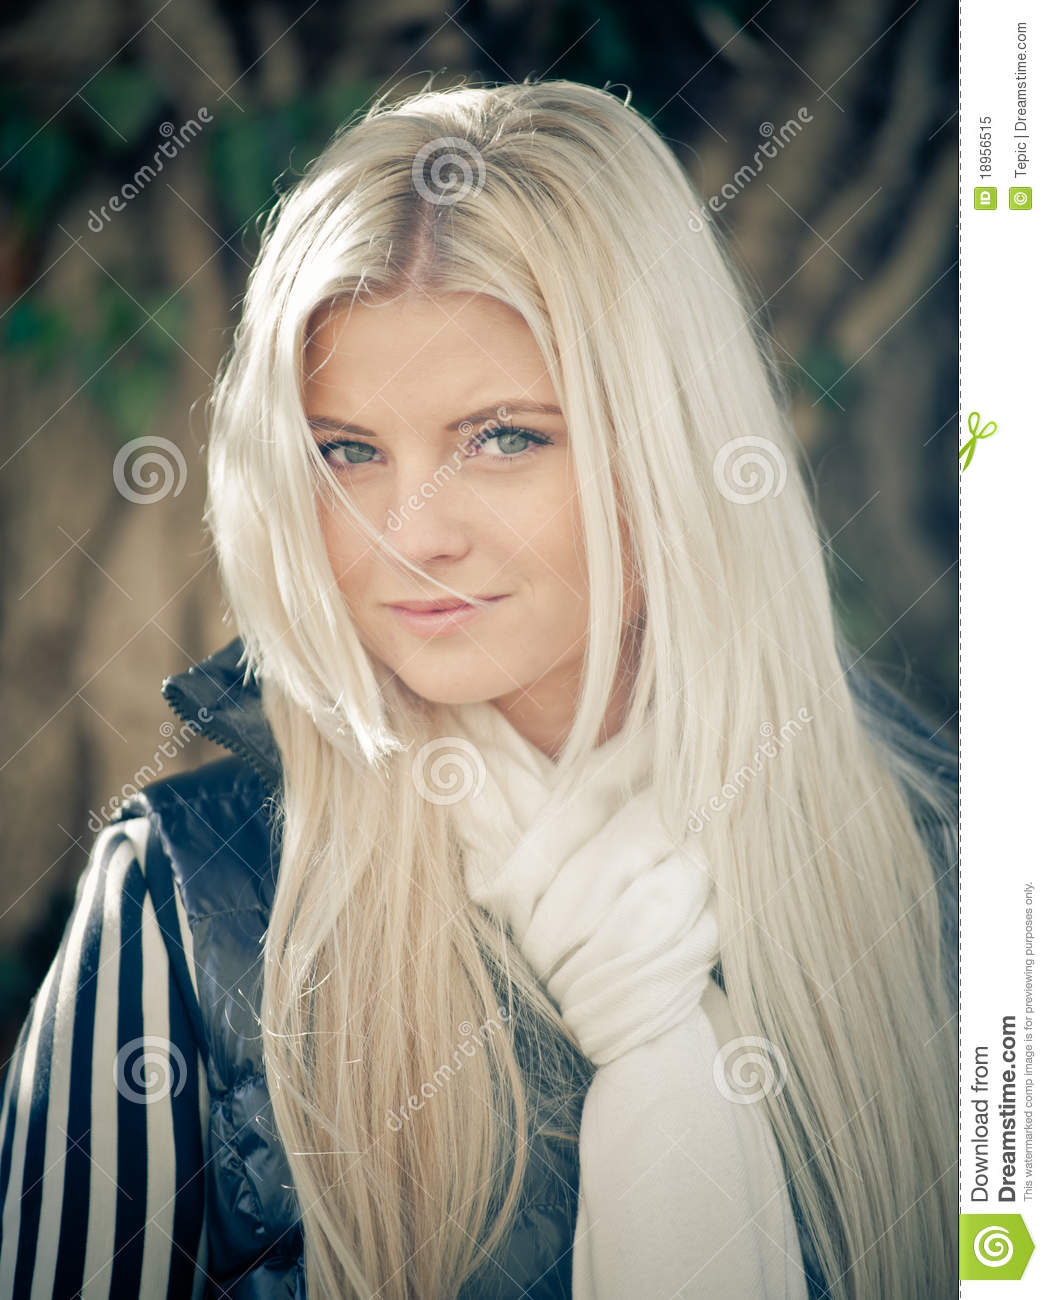 Blonde Woman with Shawl